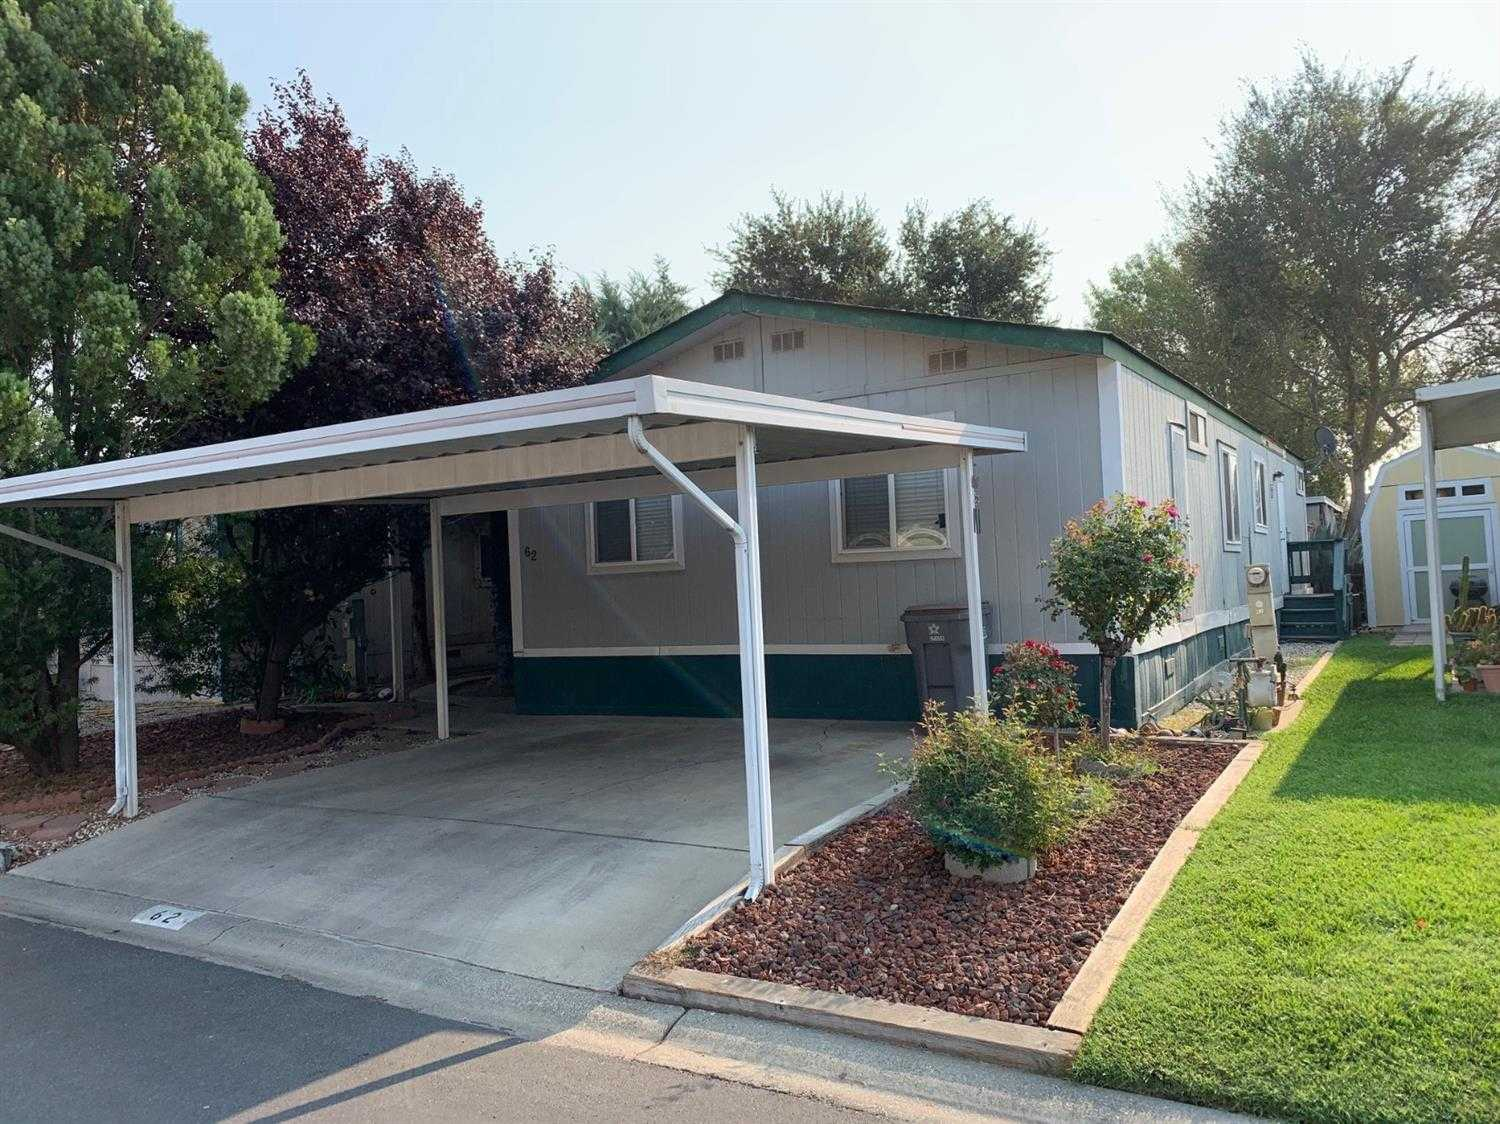 $90,000,000 - 3Br/2Ba -  for Sale in West Sacramento